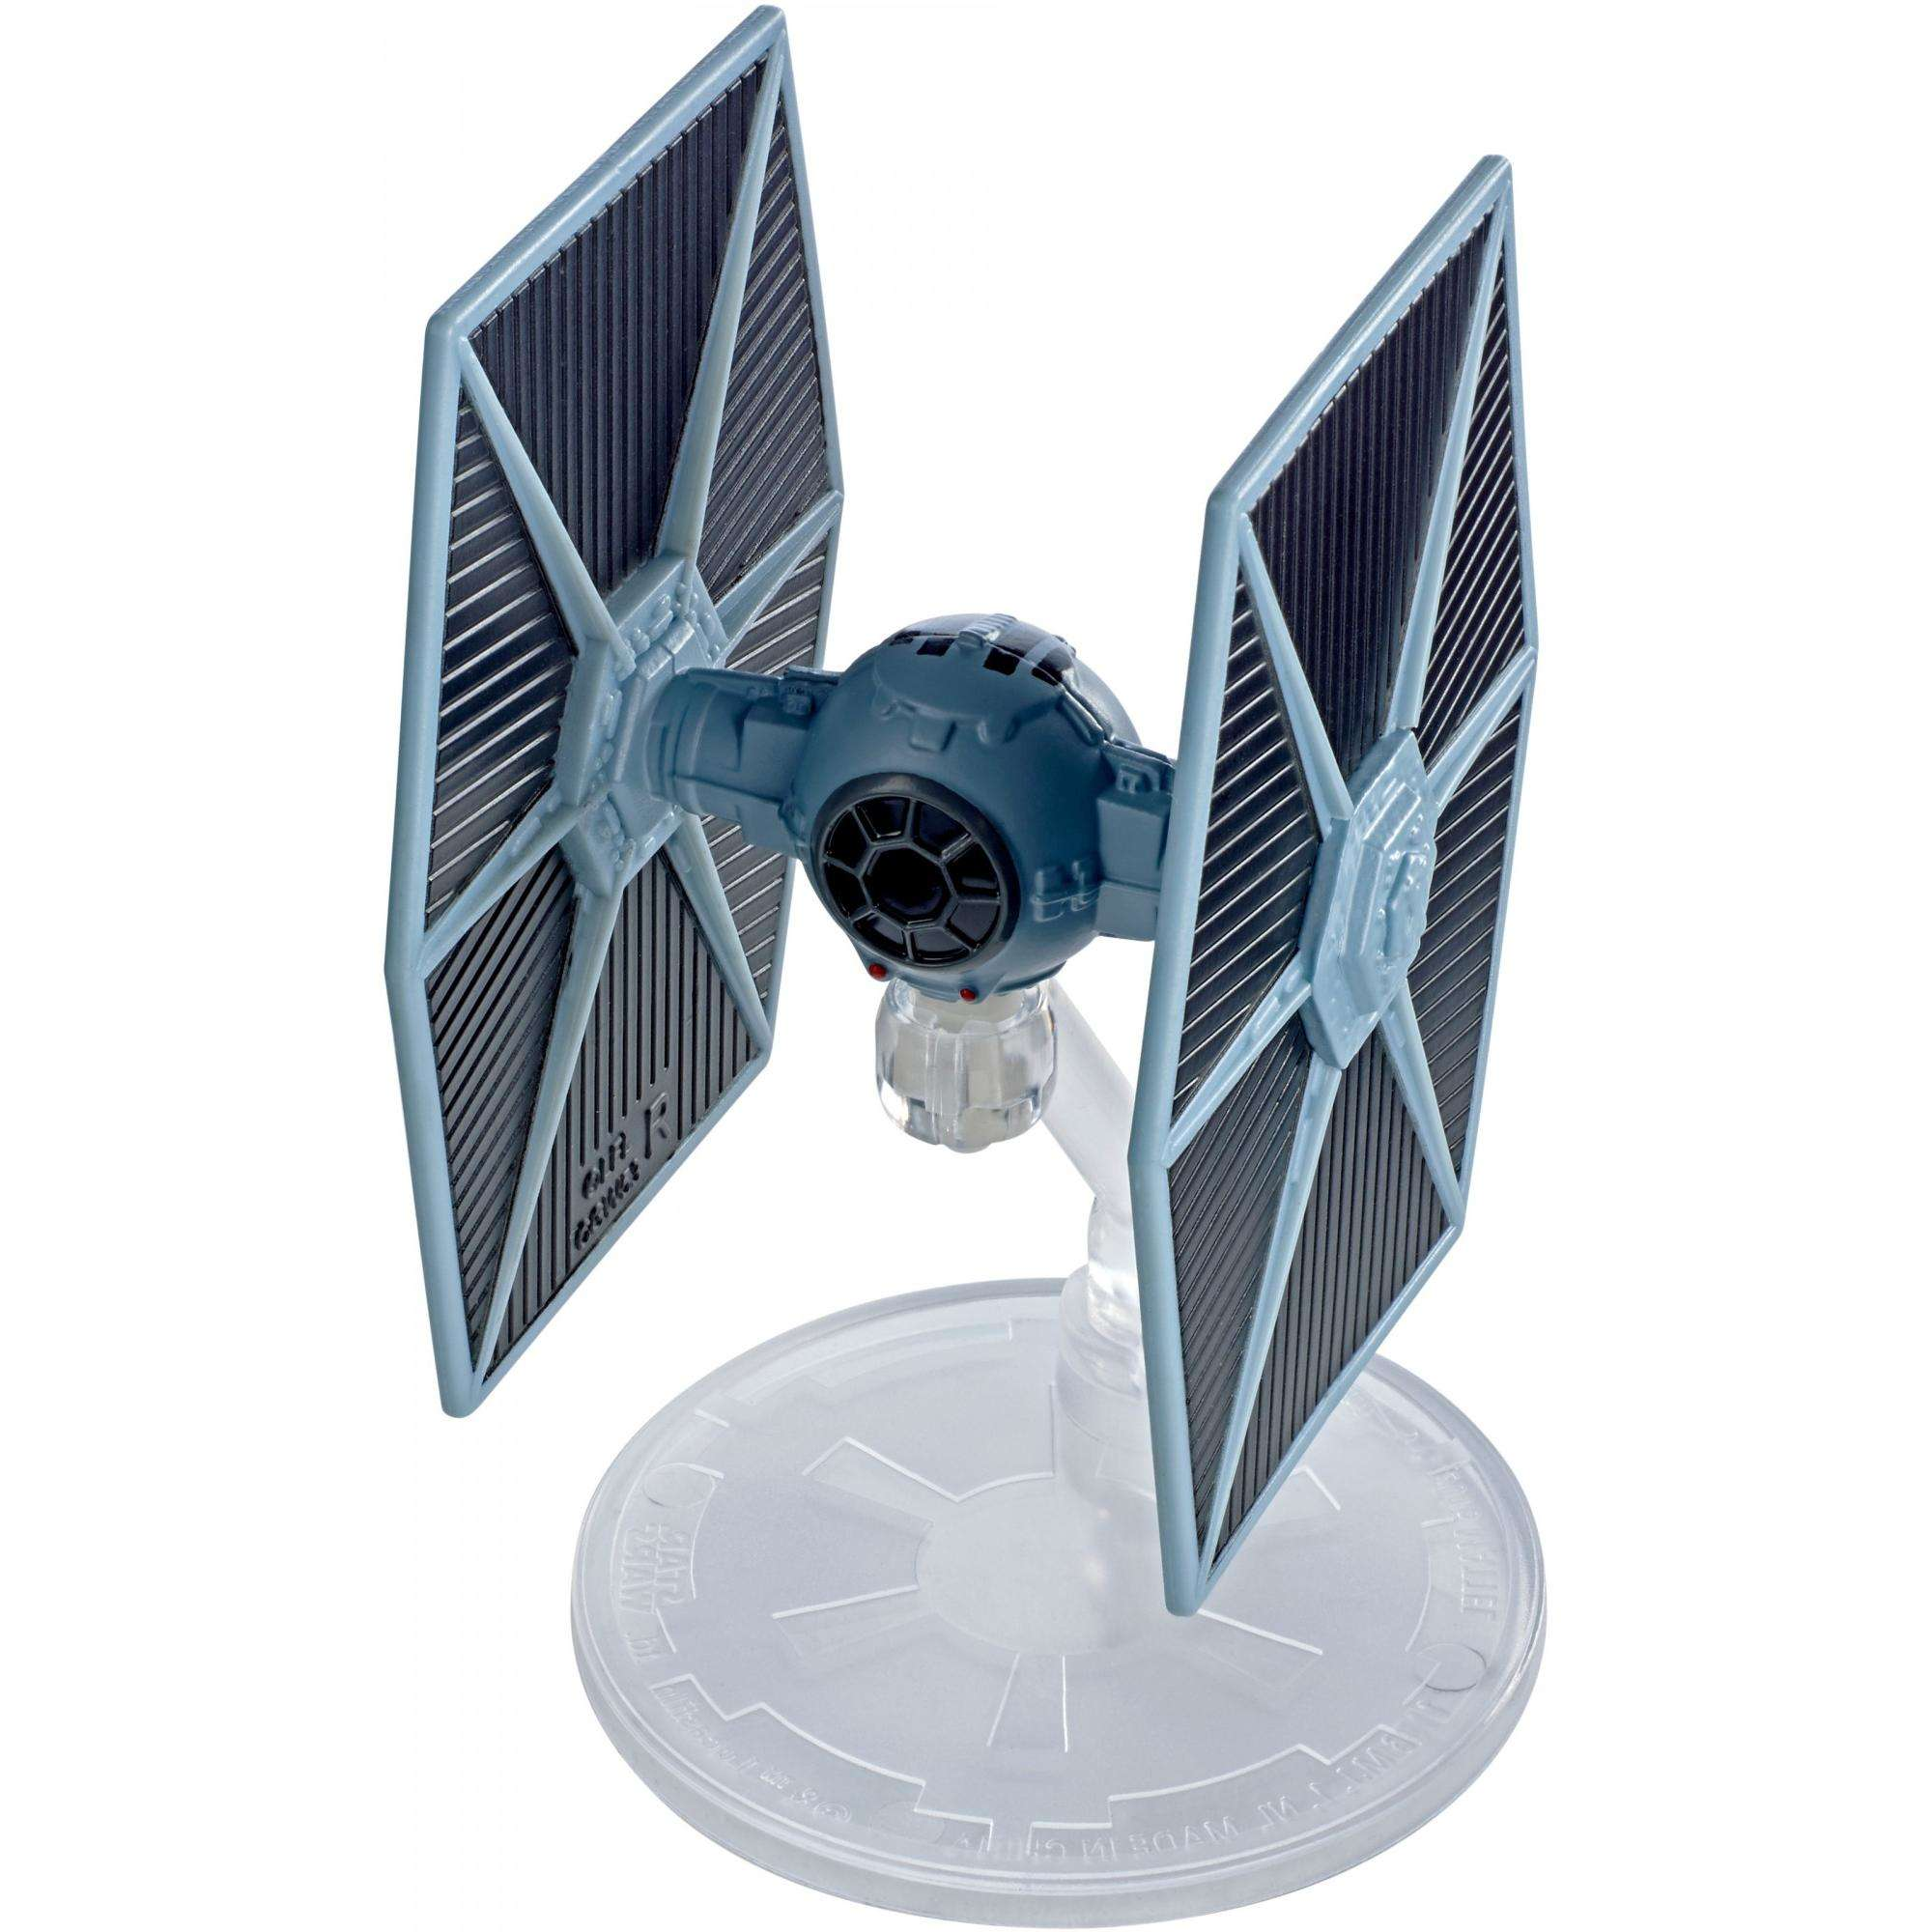 Hot Wheels Star Wars 40Th Anniversary TIE Fighter, Starship